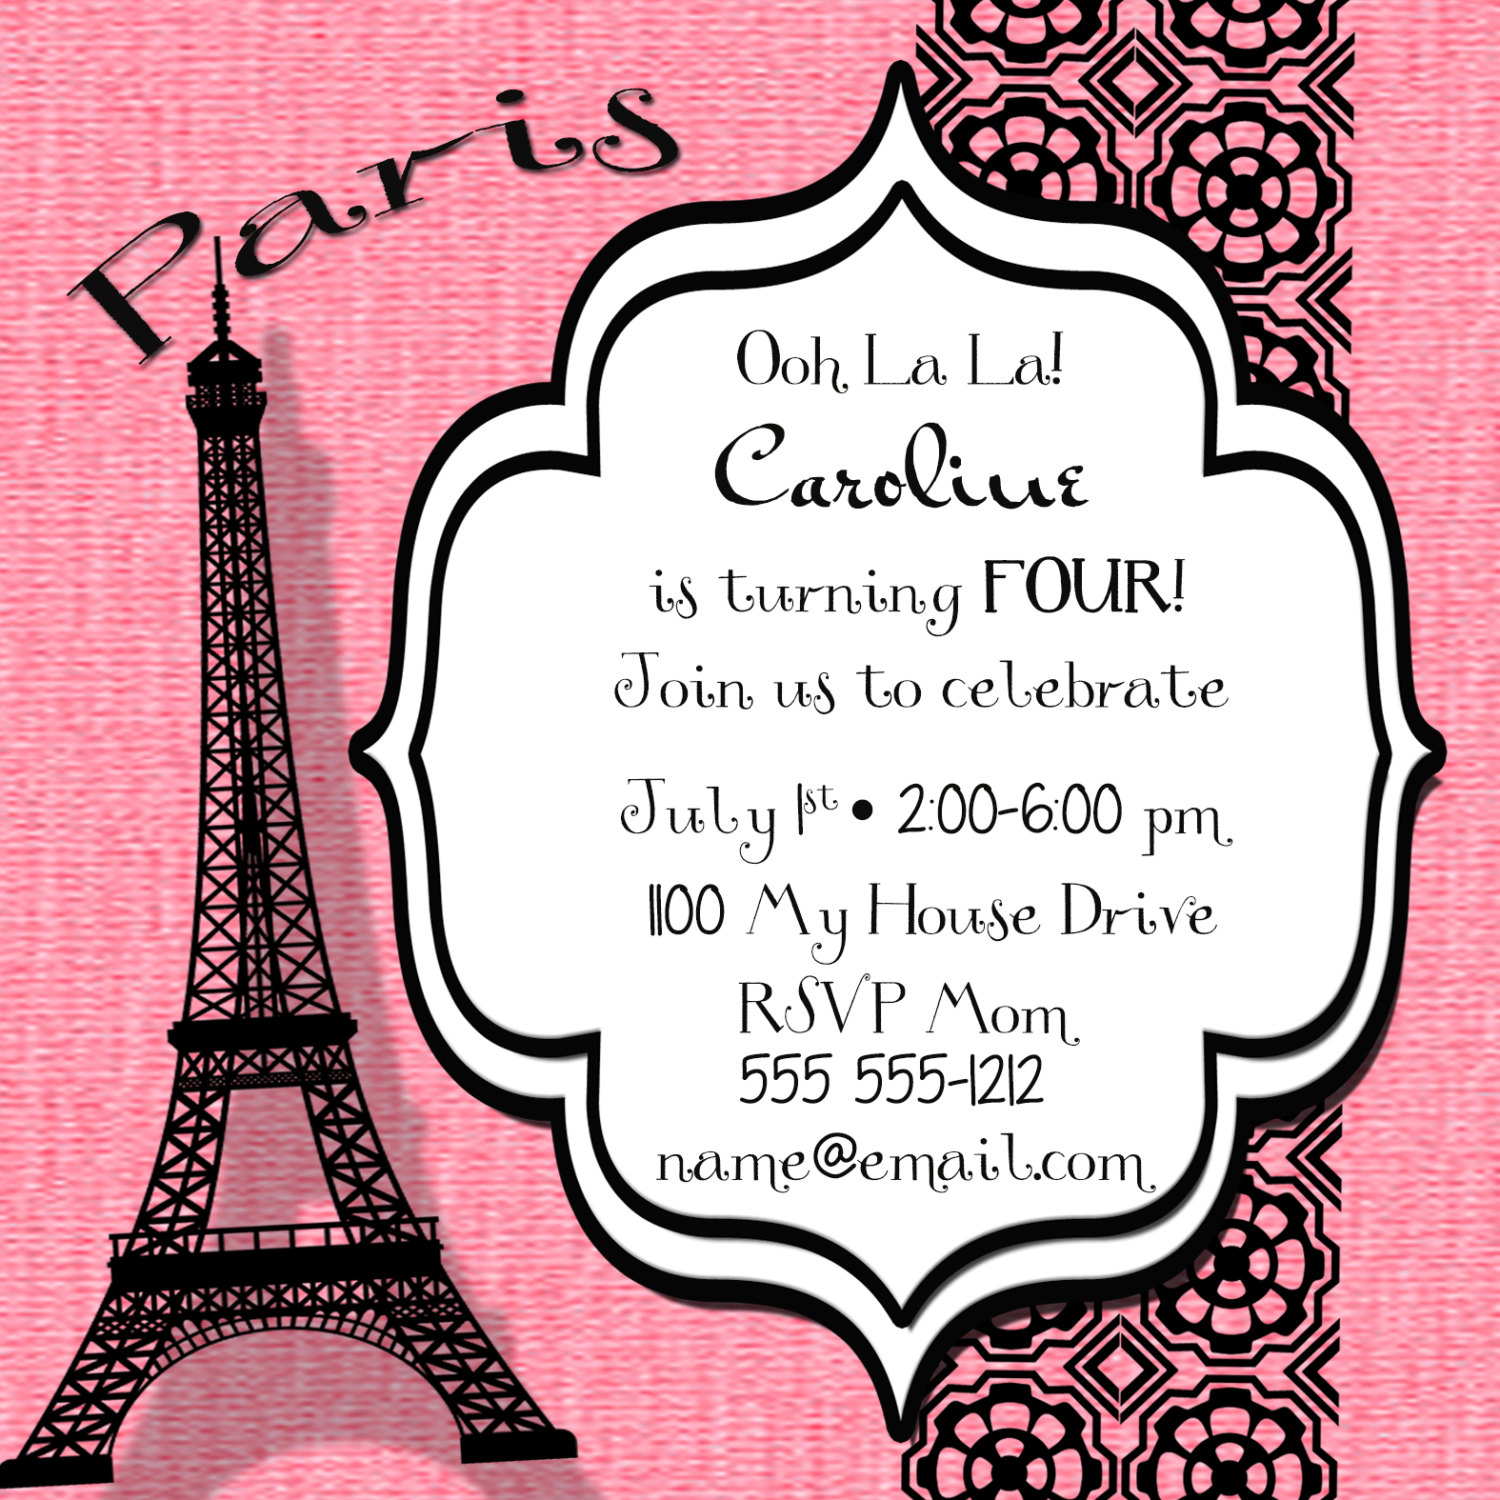 Paris Eiffel Tower Personalized Birthday Invitation Sided - Invitation in french to birthday party